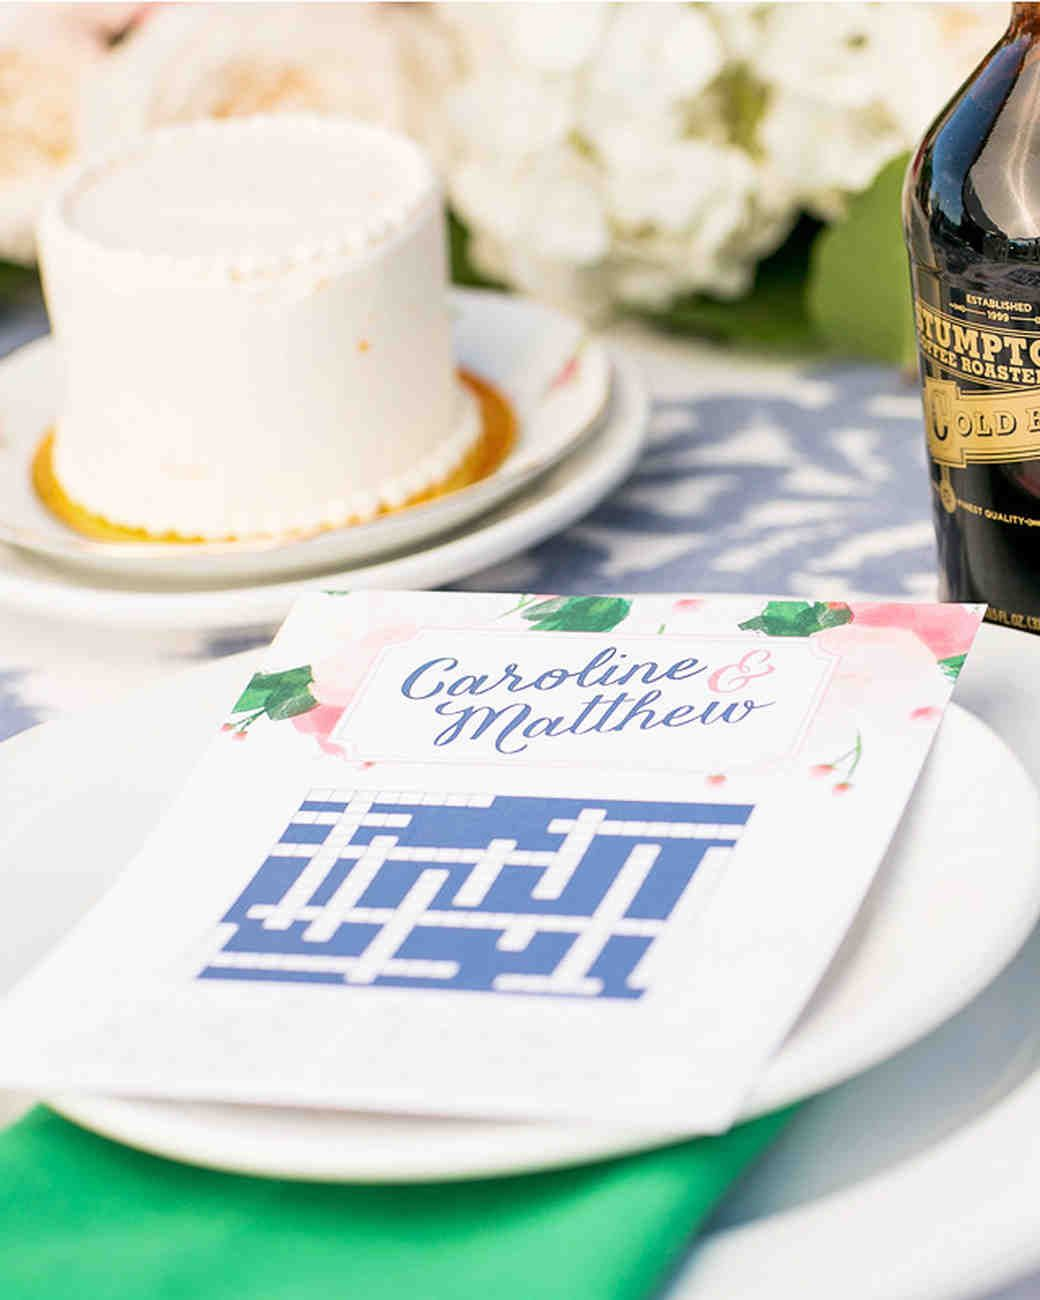 Brunch weddings are all about the fun! Keep your guests entertained with tableside crossword puzzles. Bonus: It's a cute memento for them to take home!